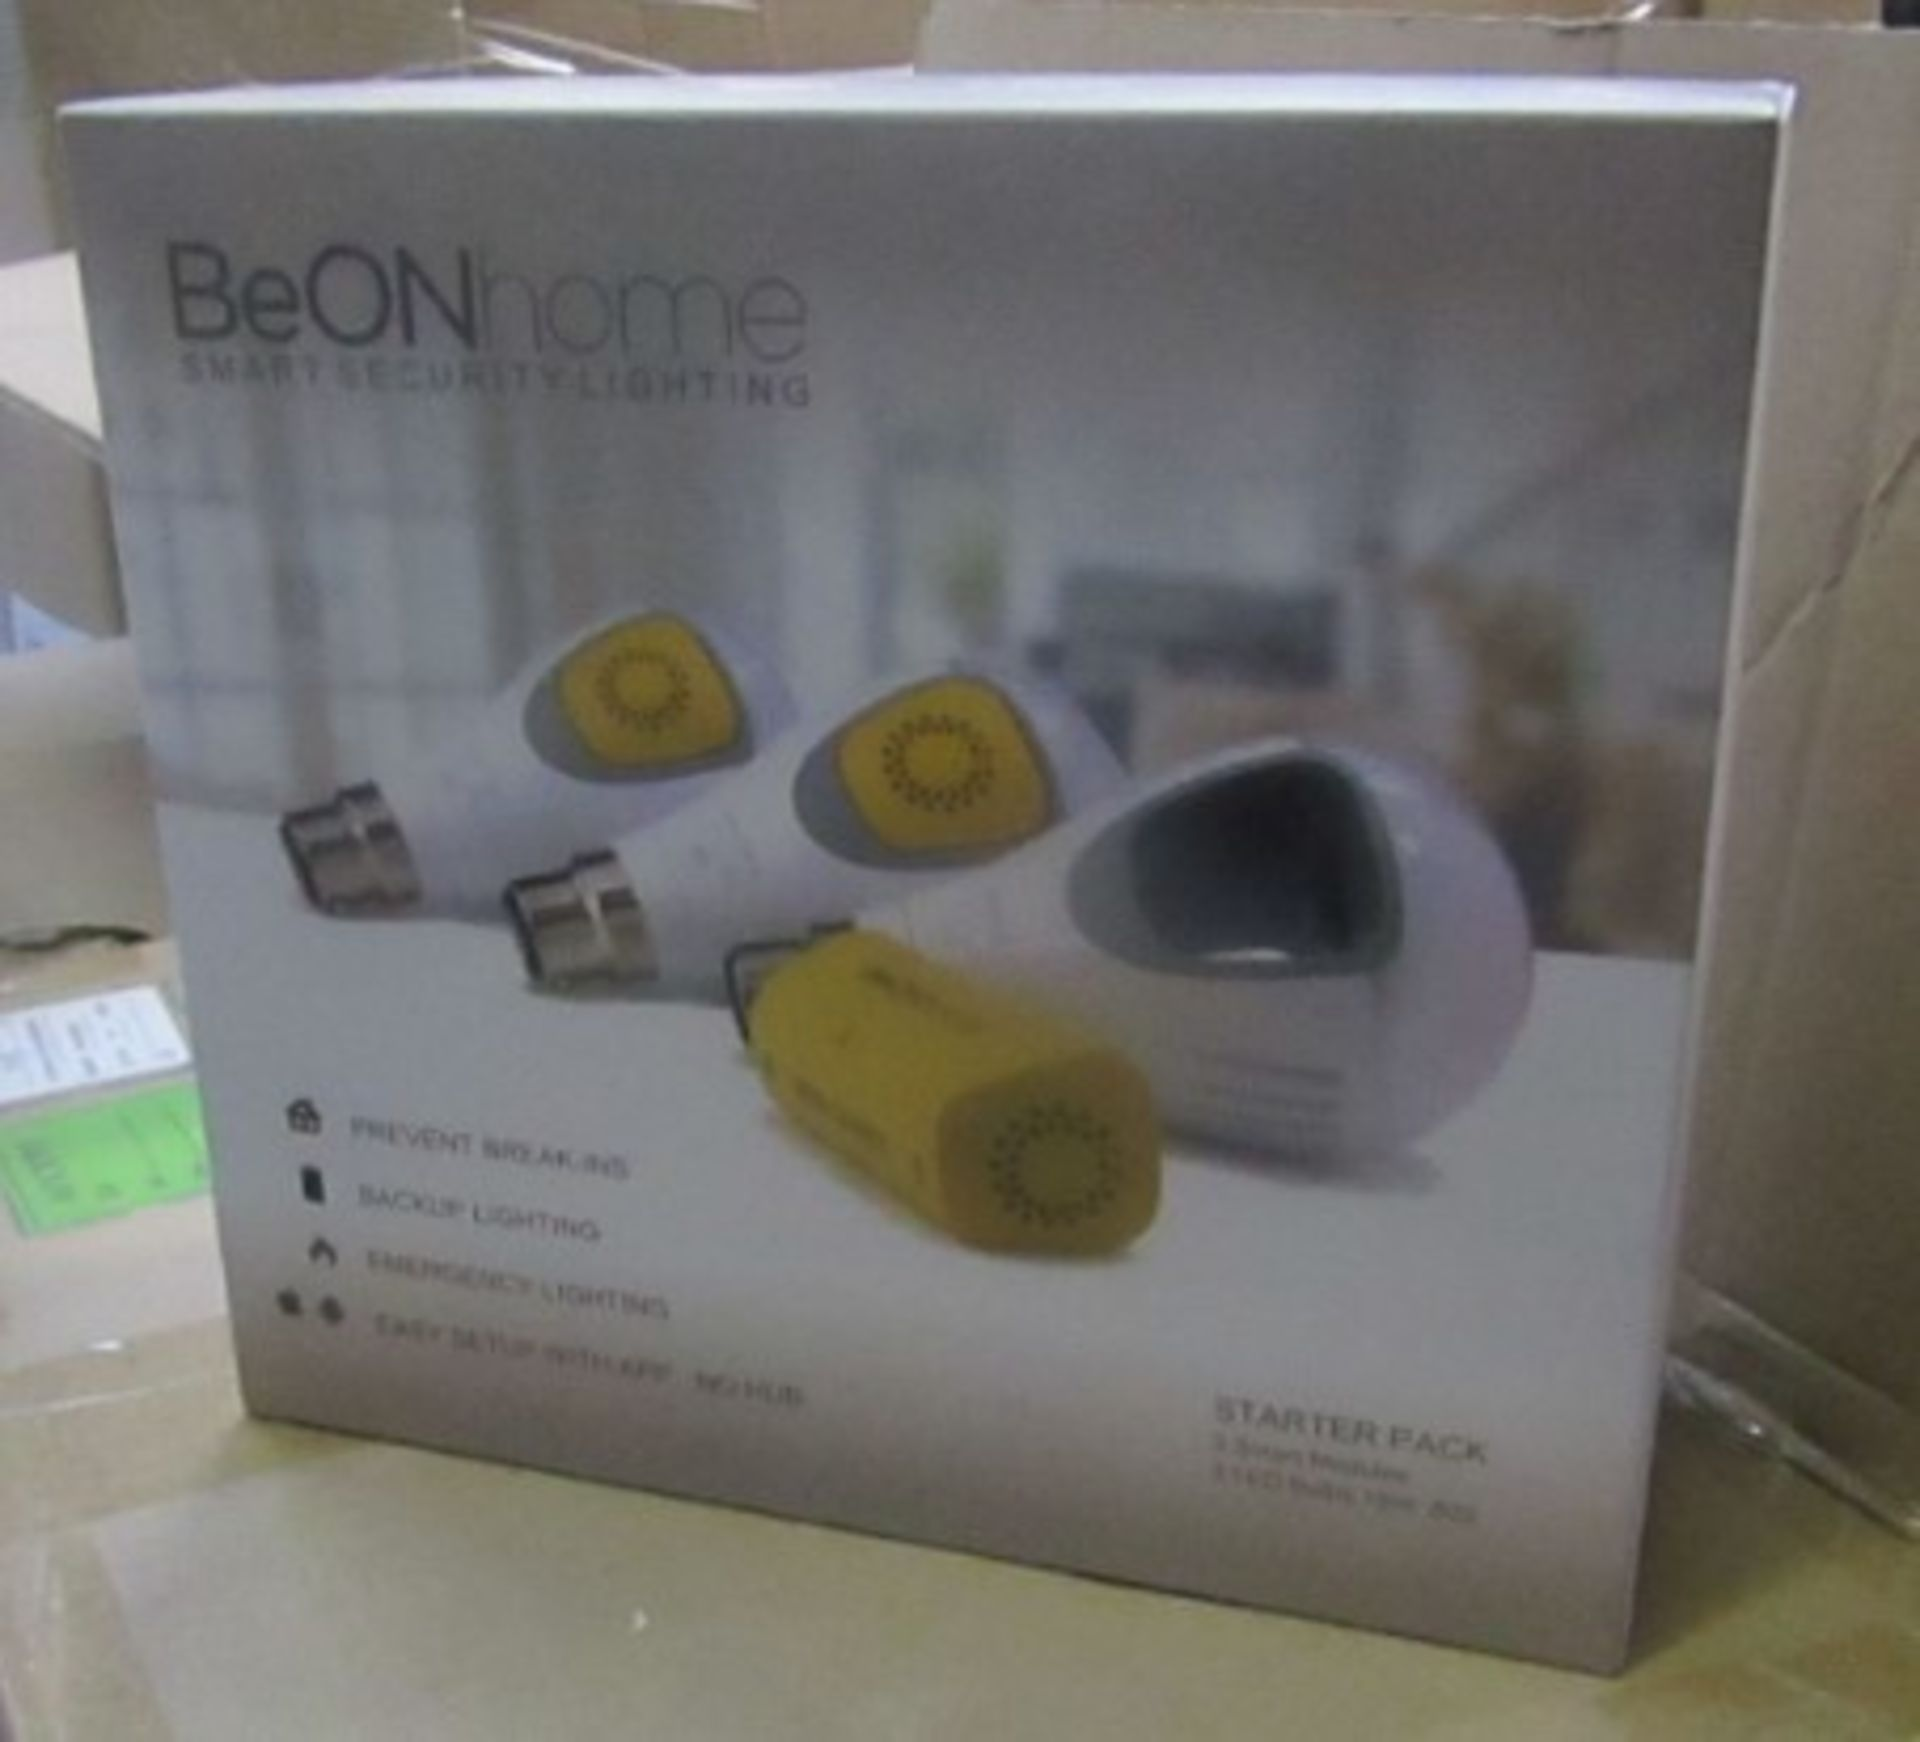 Brand New Be Onhome Smart Security Lighting Starter Pack